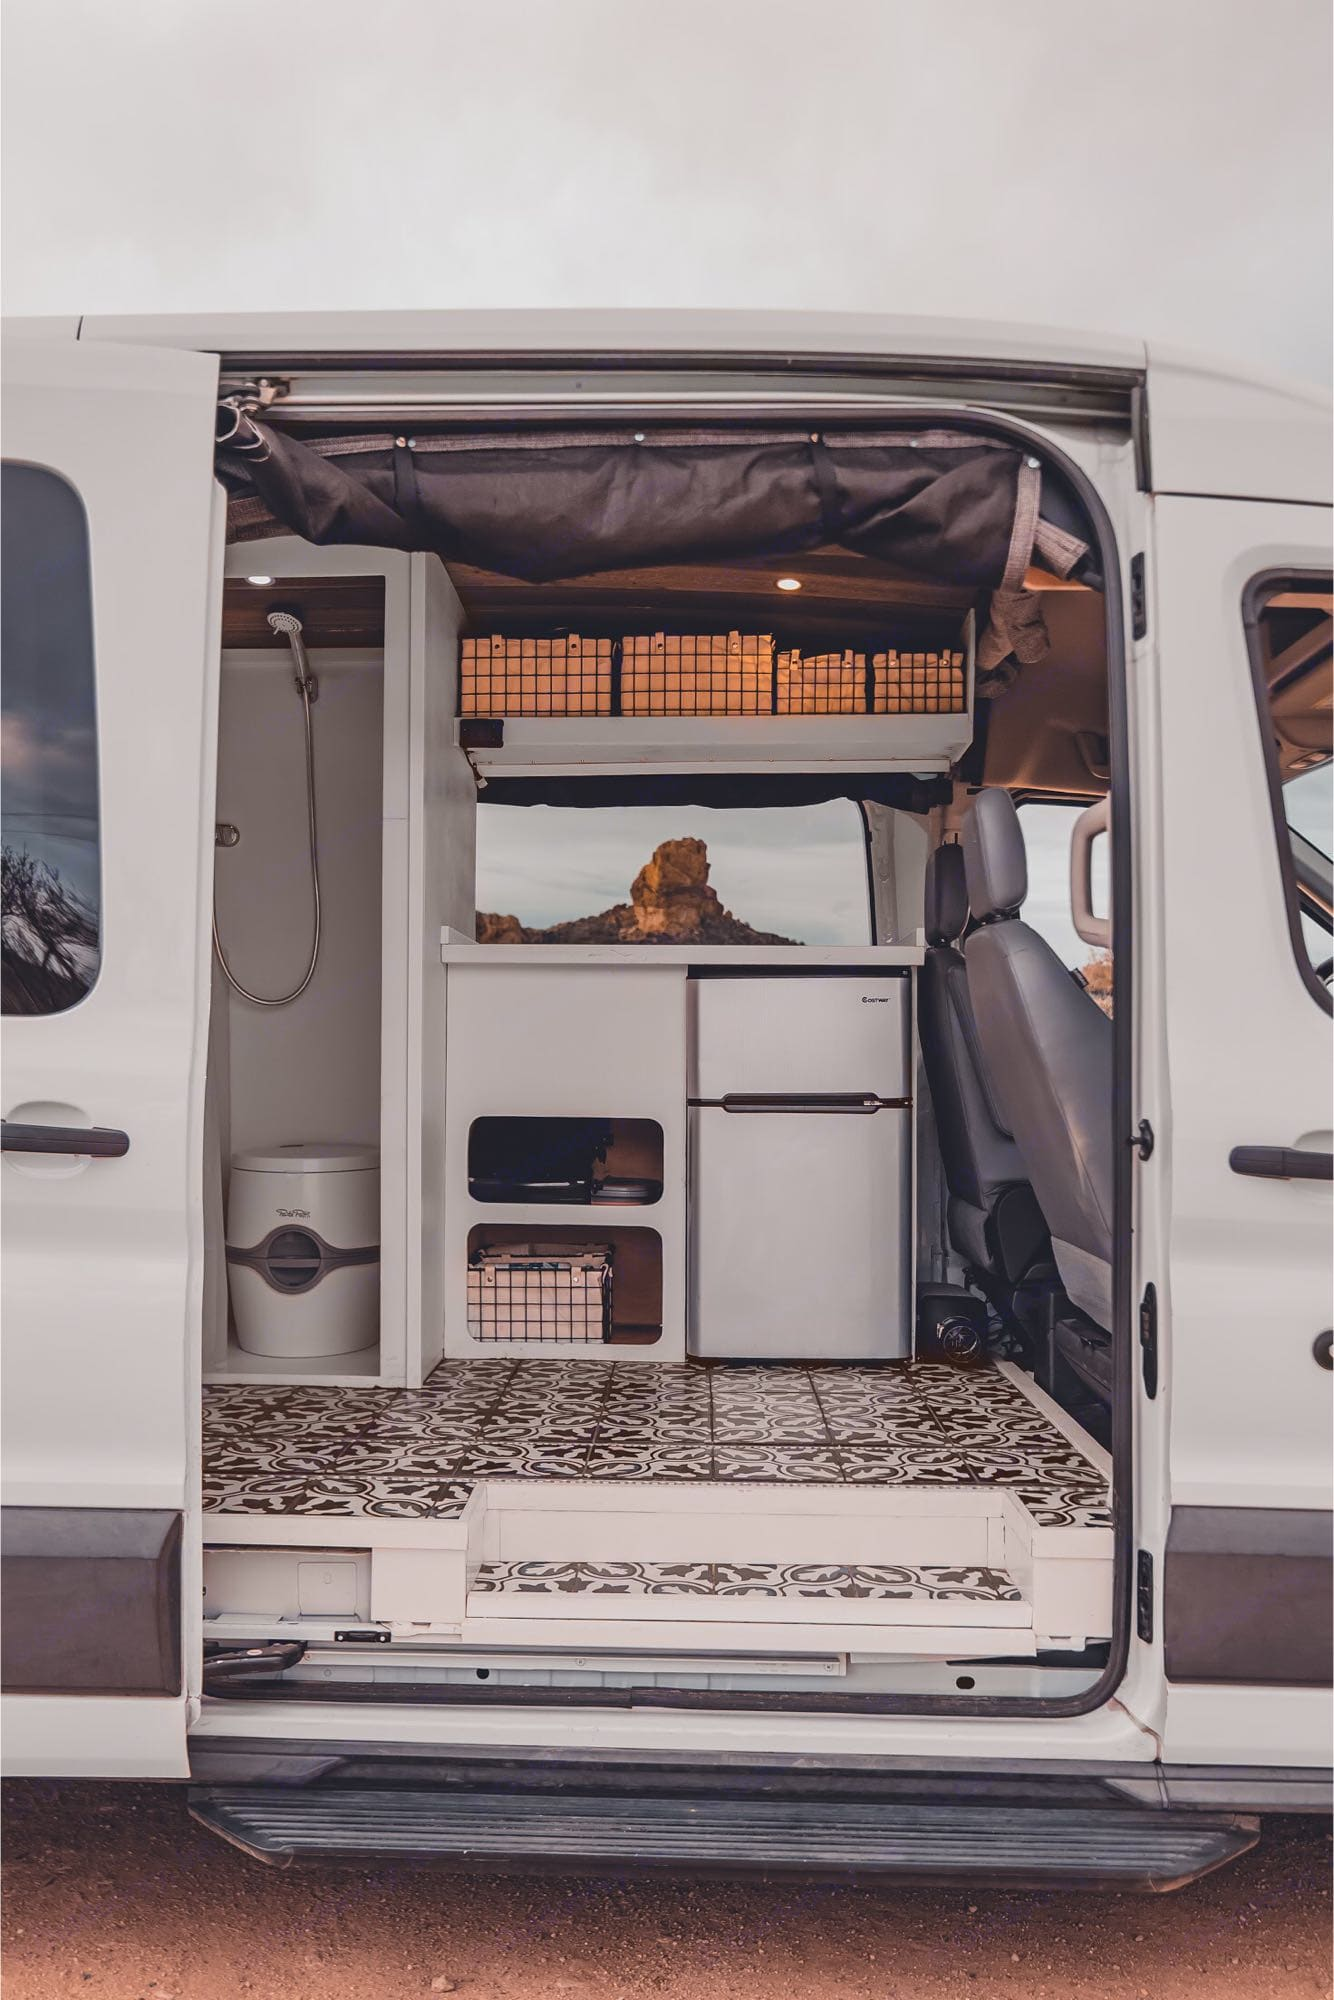 Large windows, refrigerator, and private shower/bathroom. Ford Transit 2015